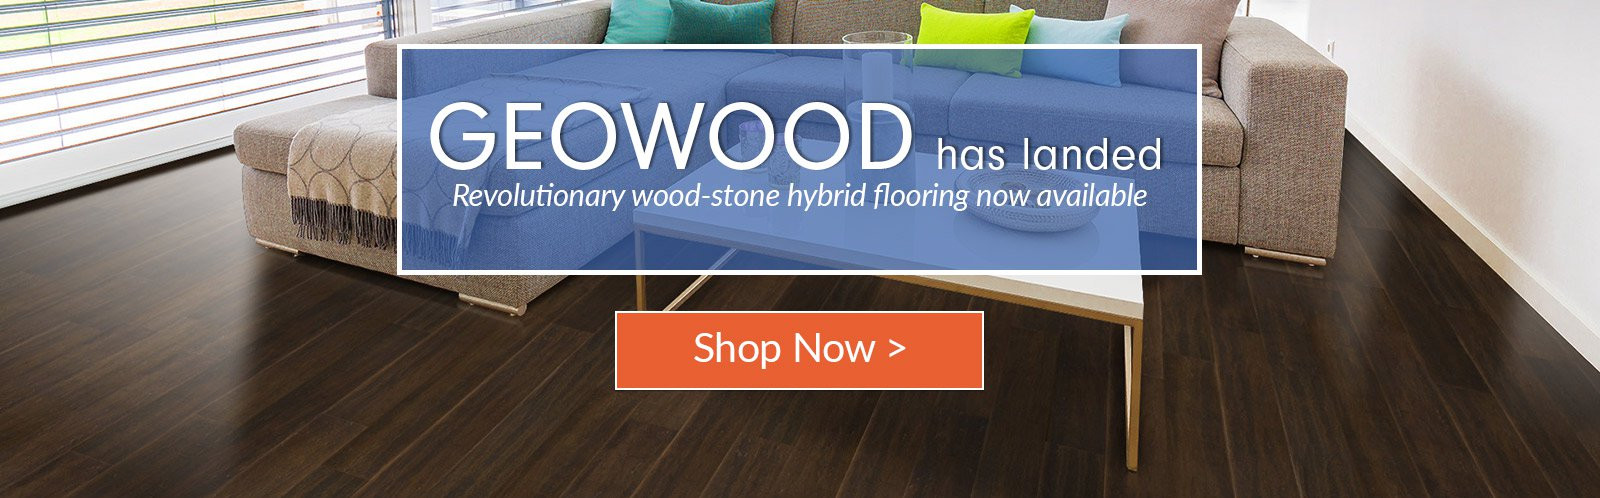 hardwood flooring wholesale georgia of green building construction materials and home decor cali bamboo within geowood launch homepage slider